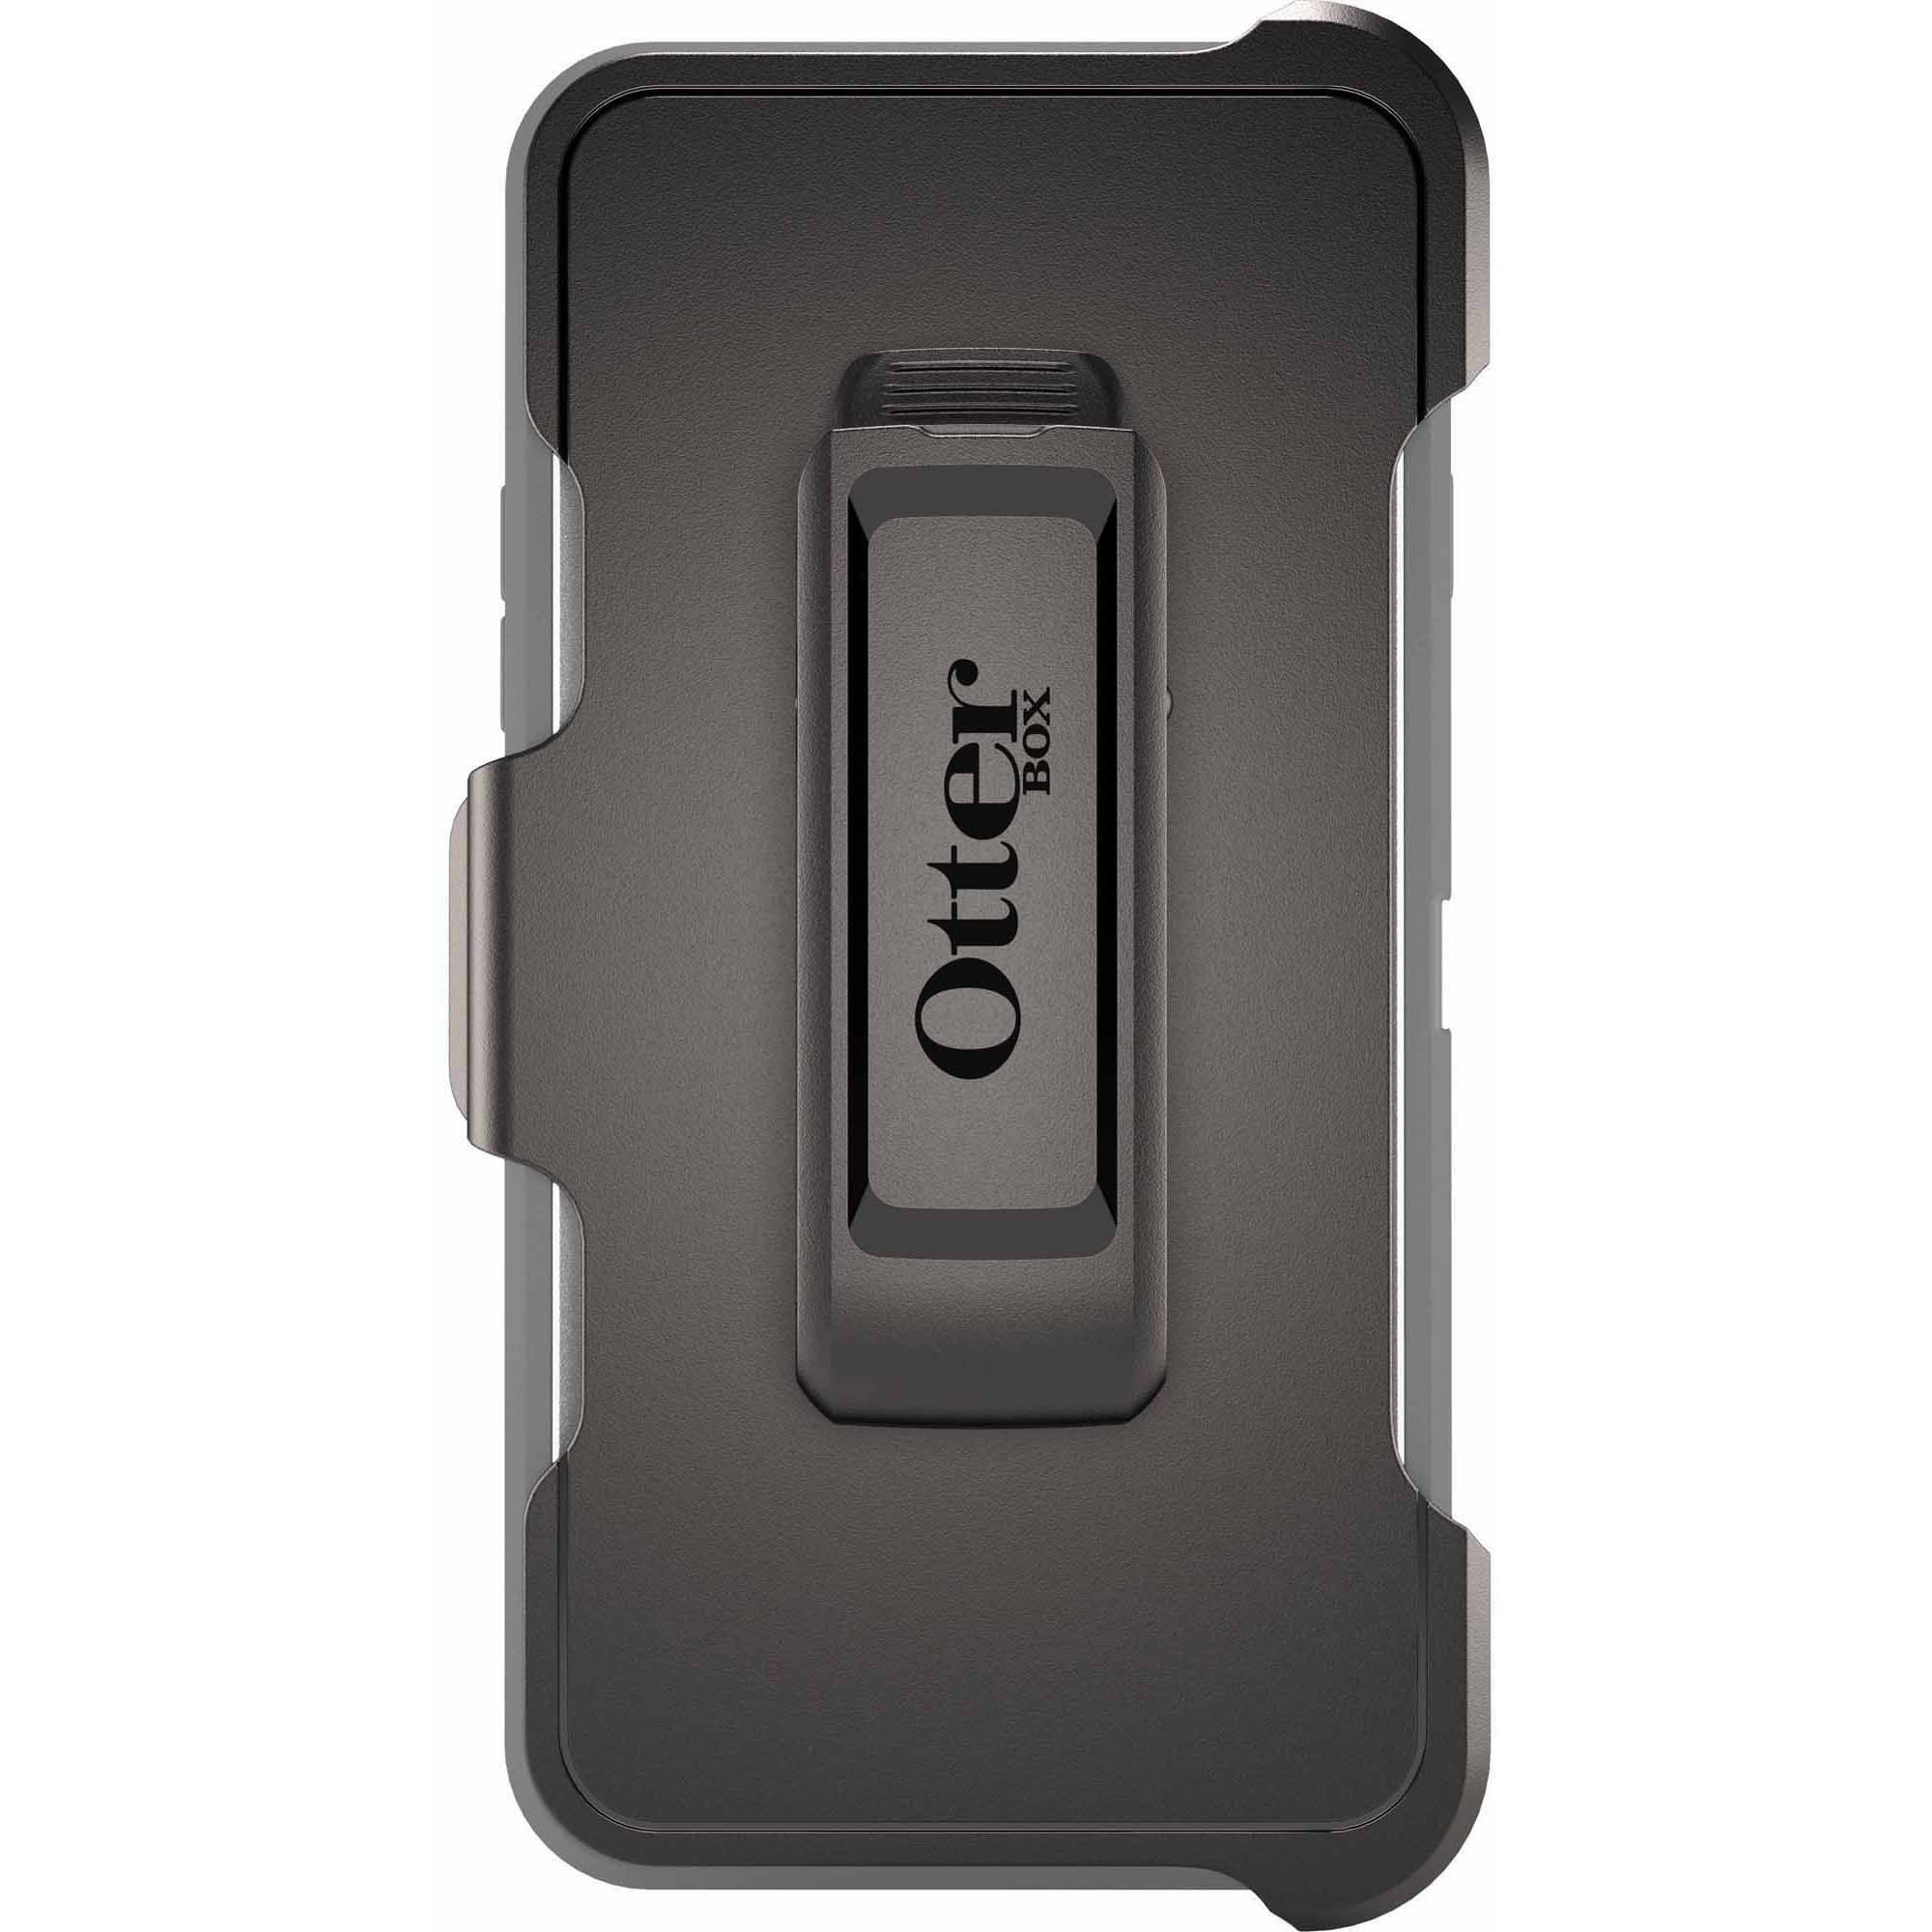 b558a86195e8c2 OtterBox Defender Series Case for iPhone 6 6s